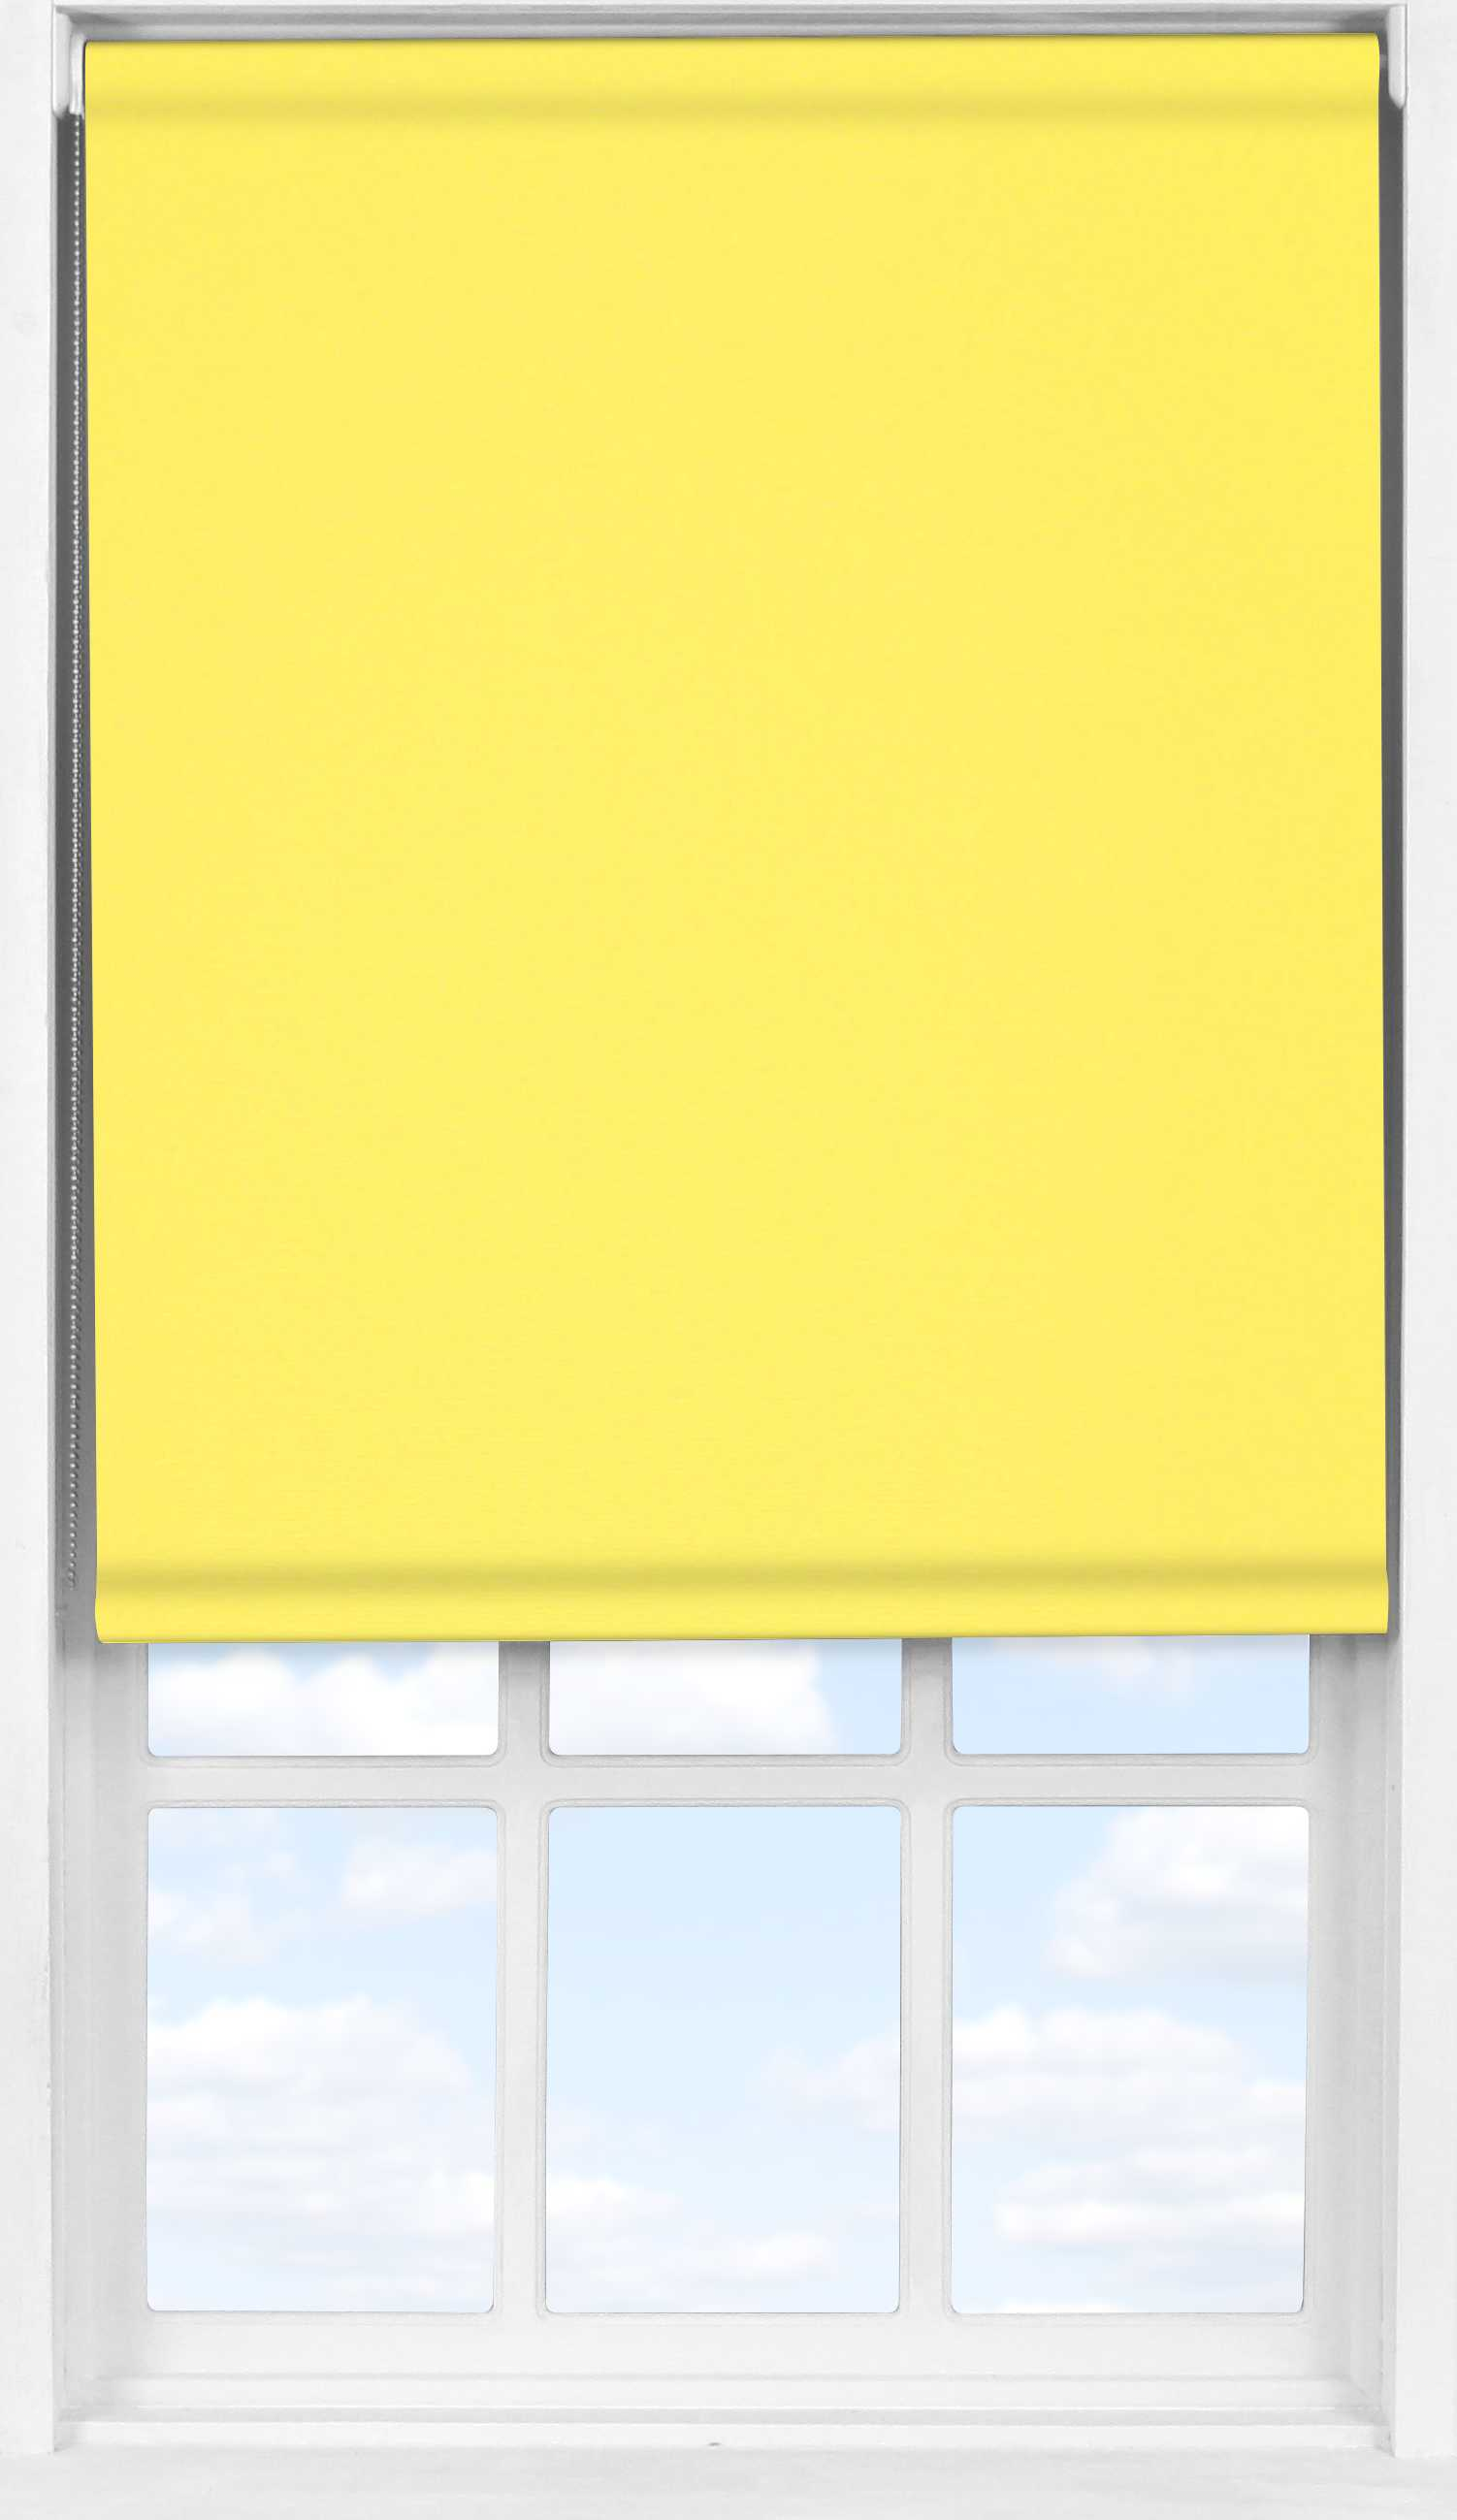 Easifit Roller Blind in Canary Yellow Translucent